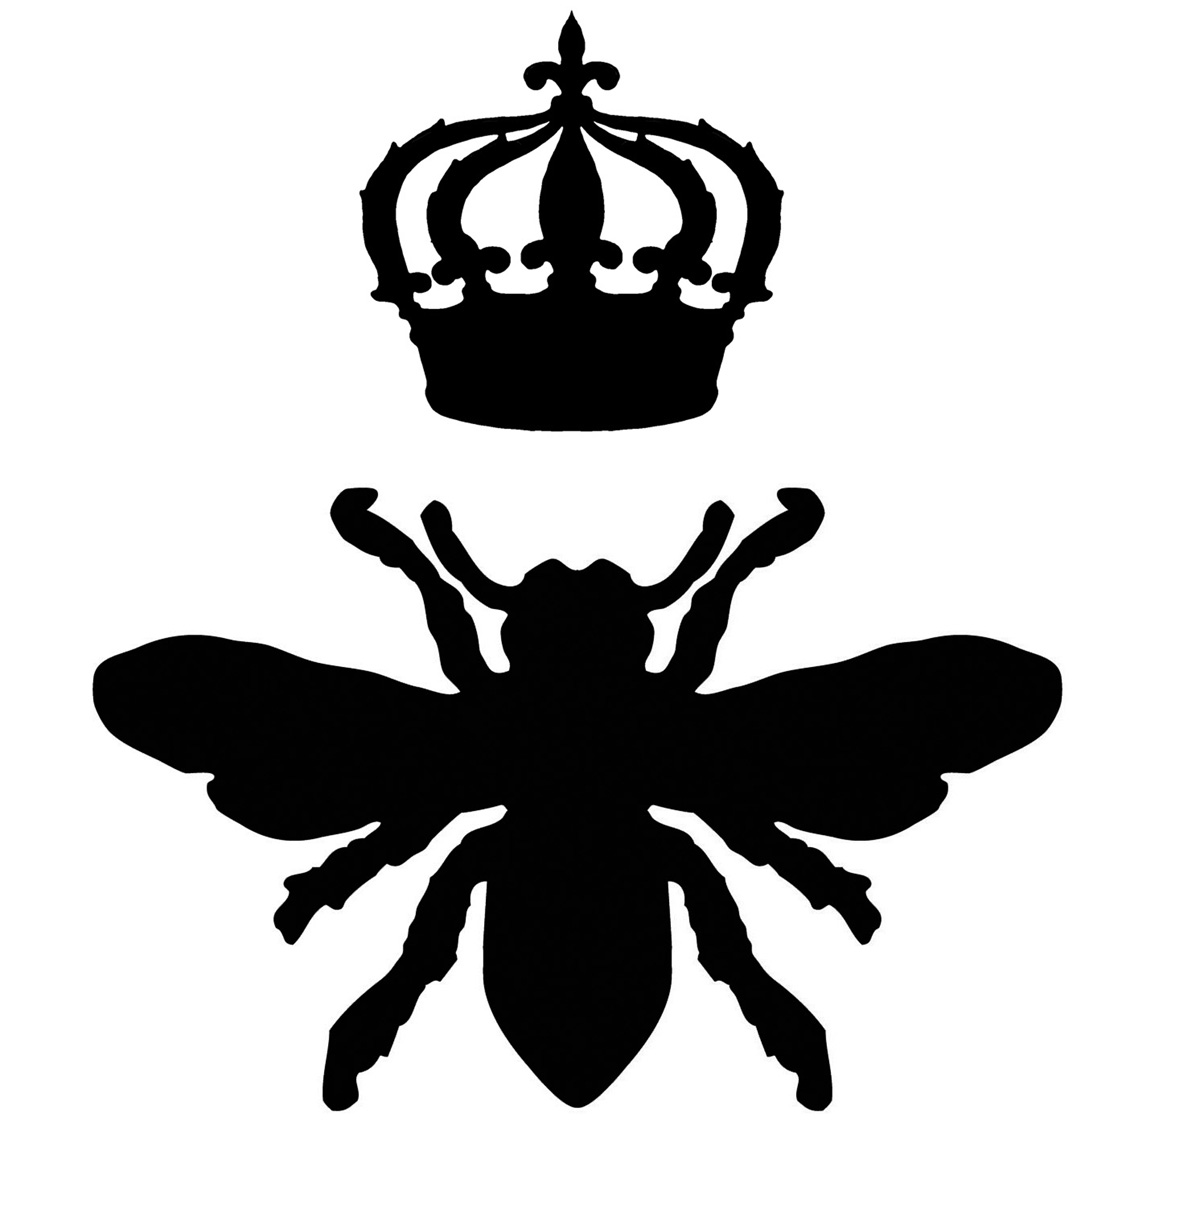 Queen Bee Iron on Transfer   Headboard Video - The Graphics Fairy    Queen Bee Logo